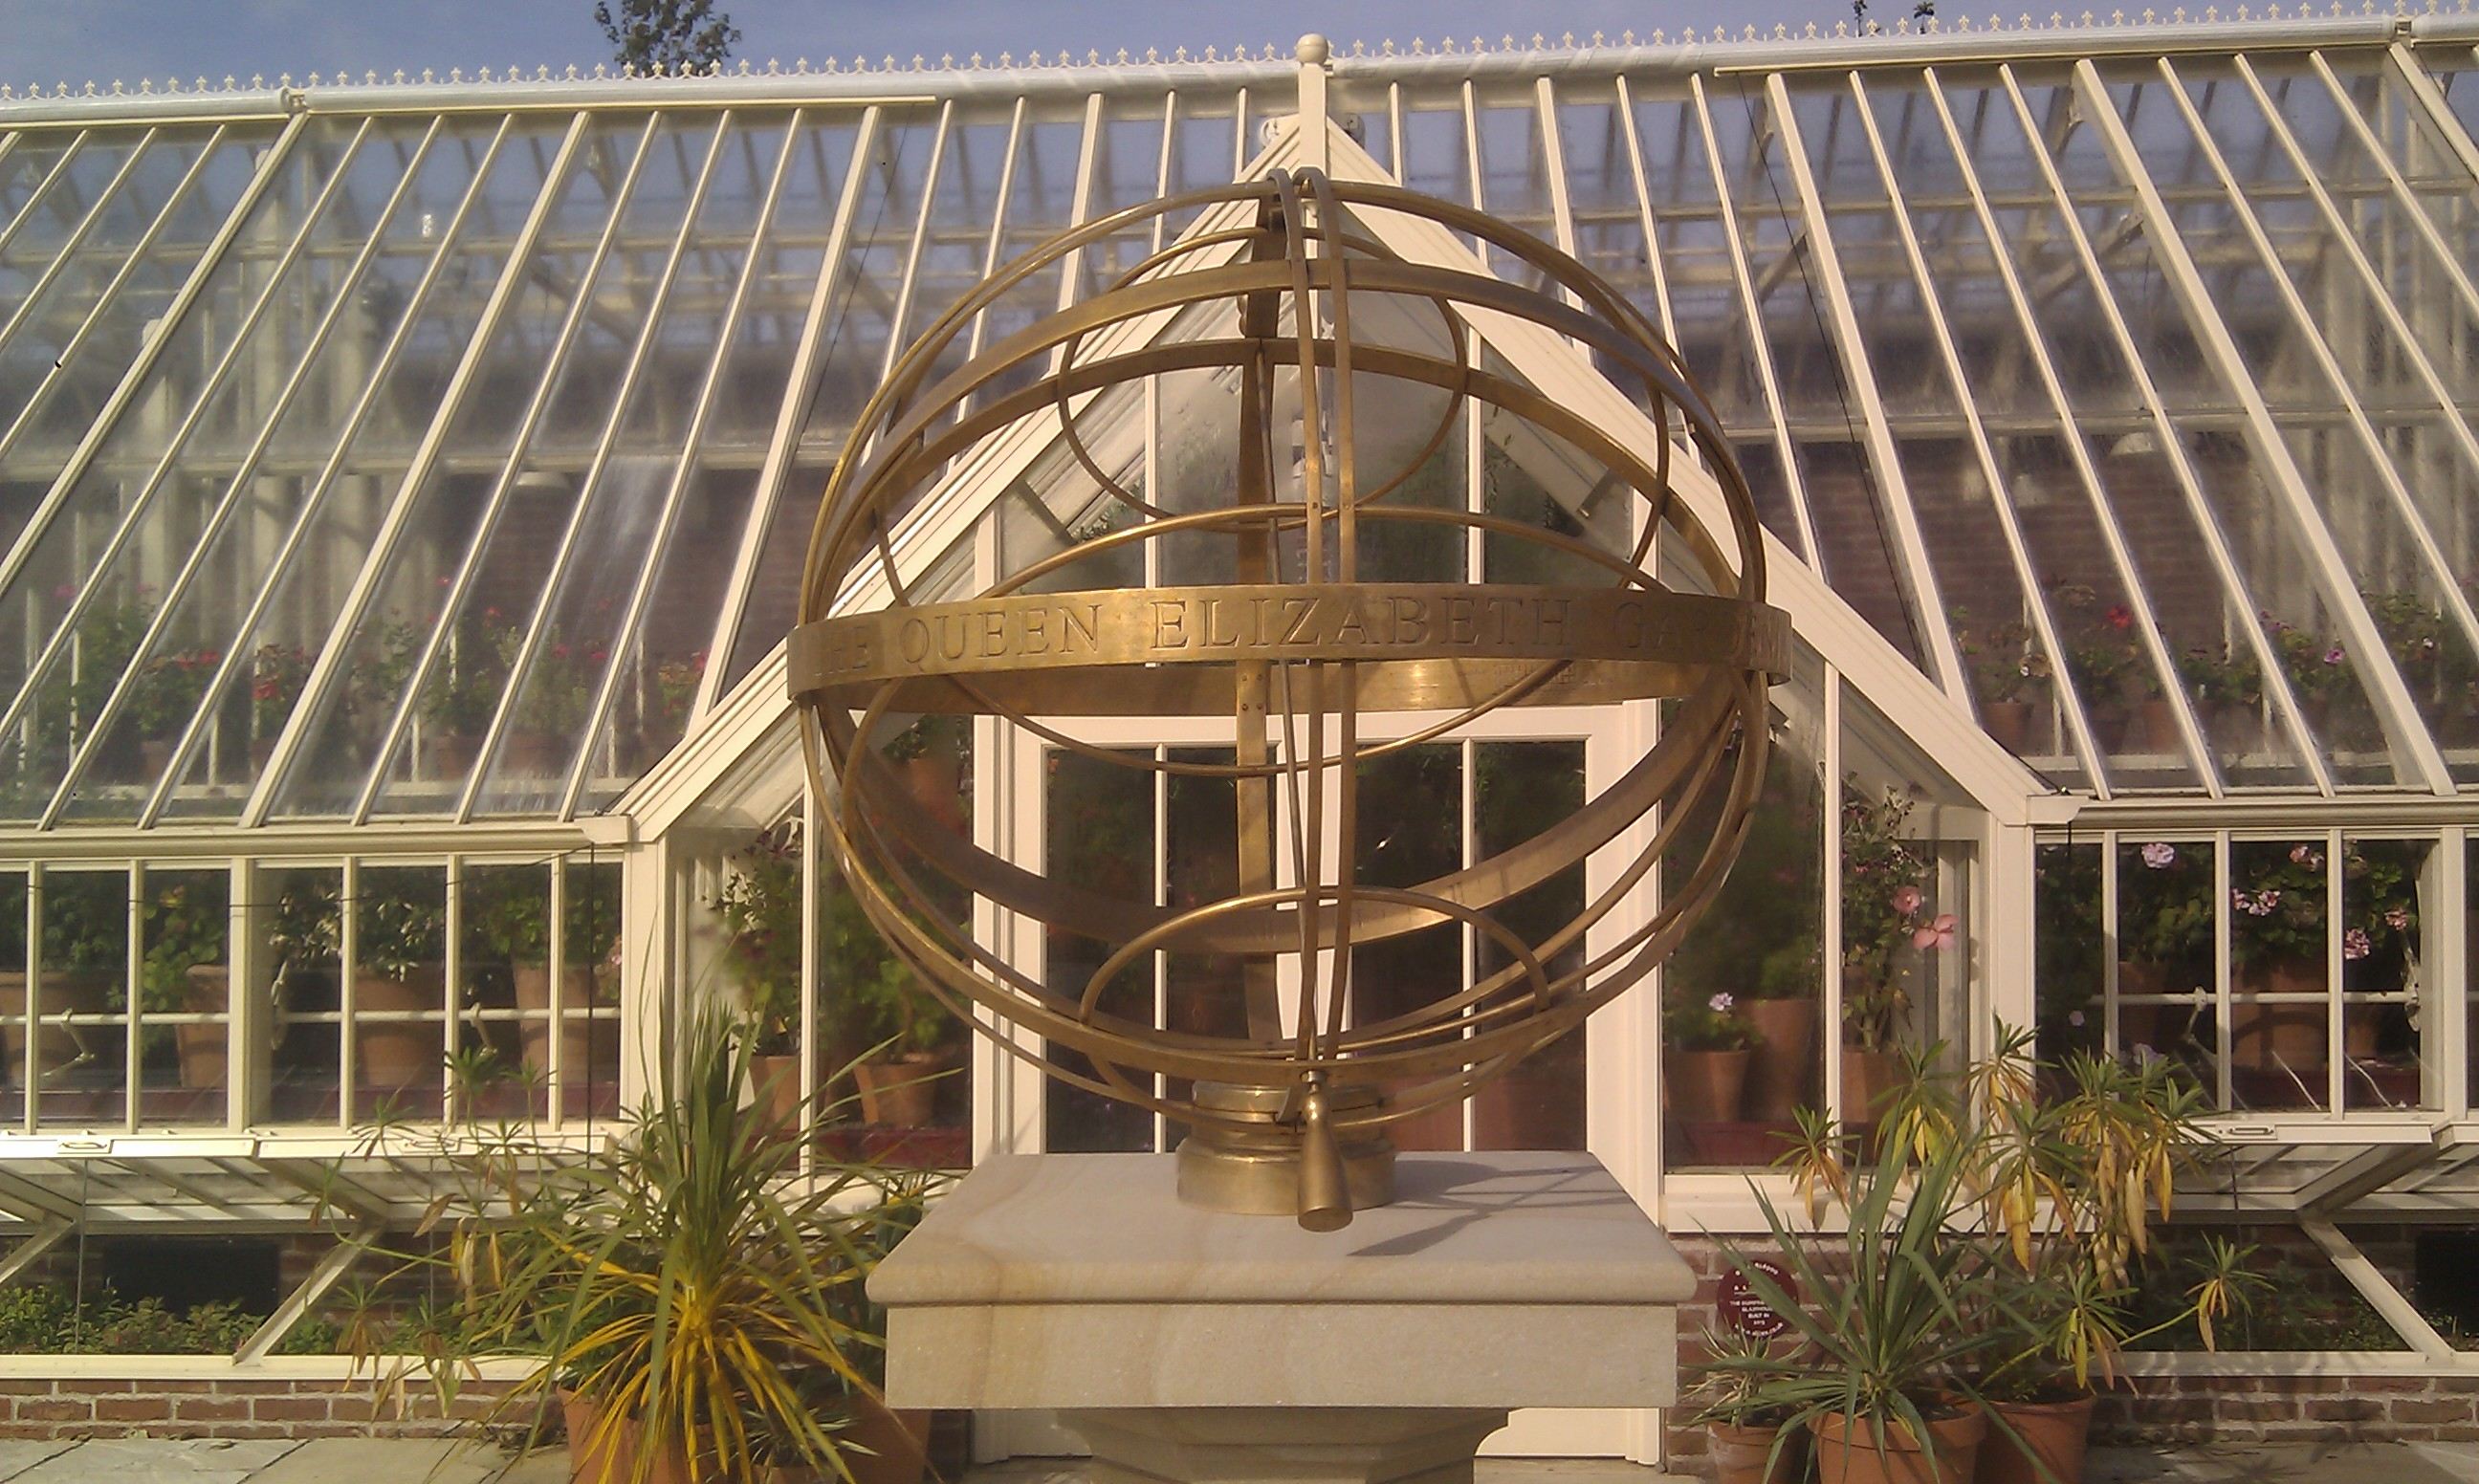 File:Armillary Sphere And Greenhouse At The Queen Elizabeth Garden,  Dumfries House